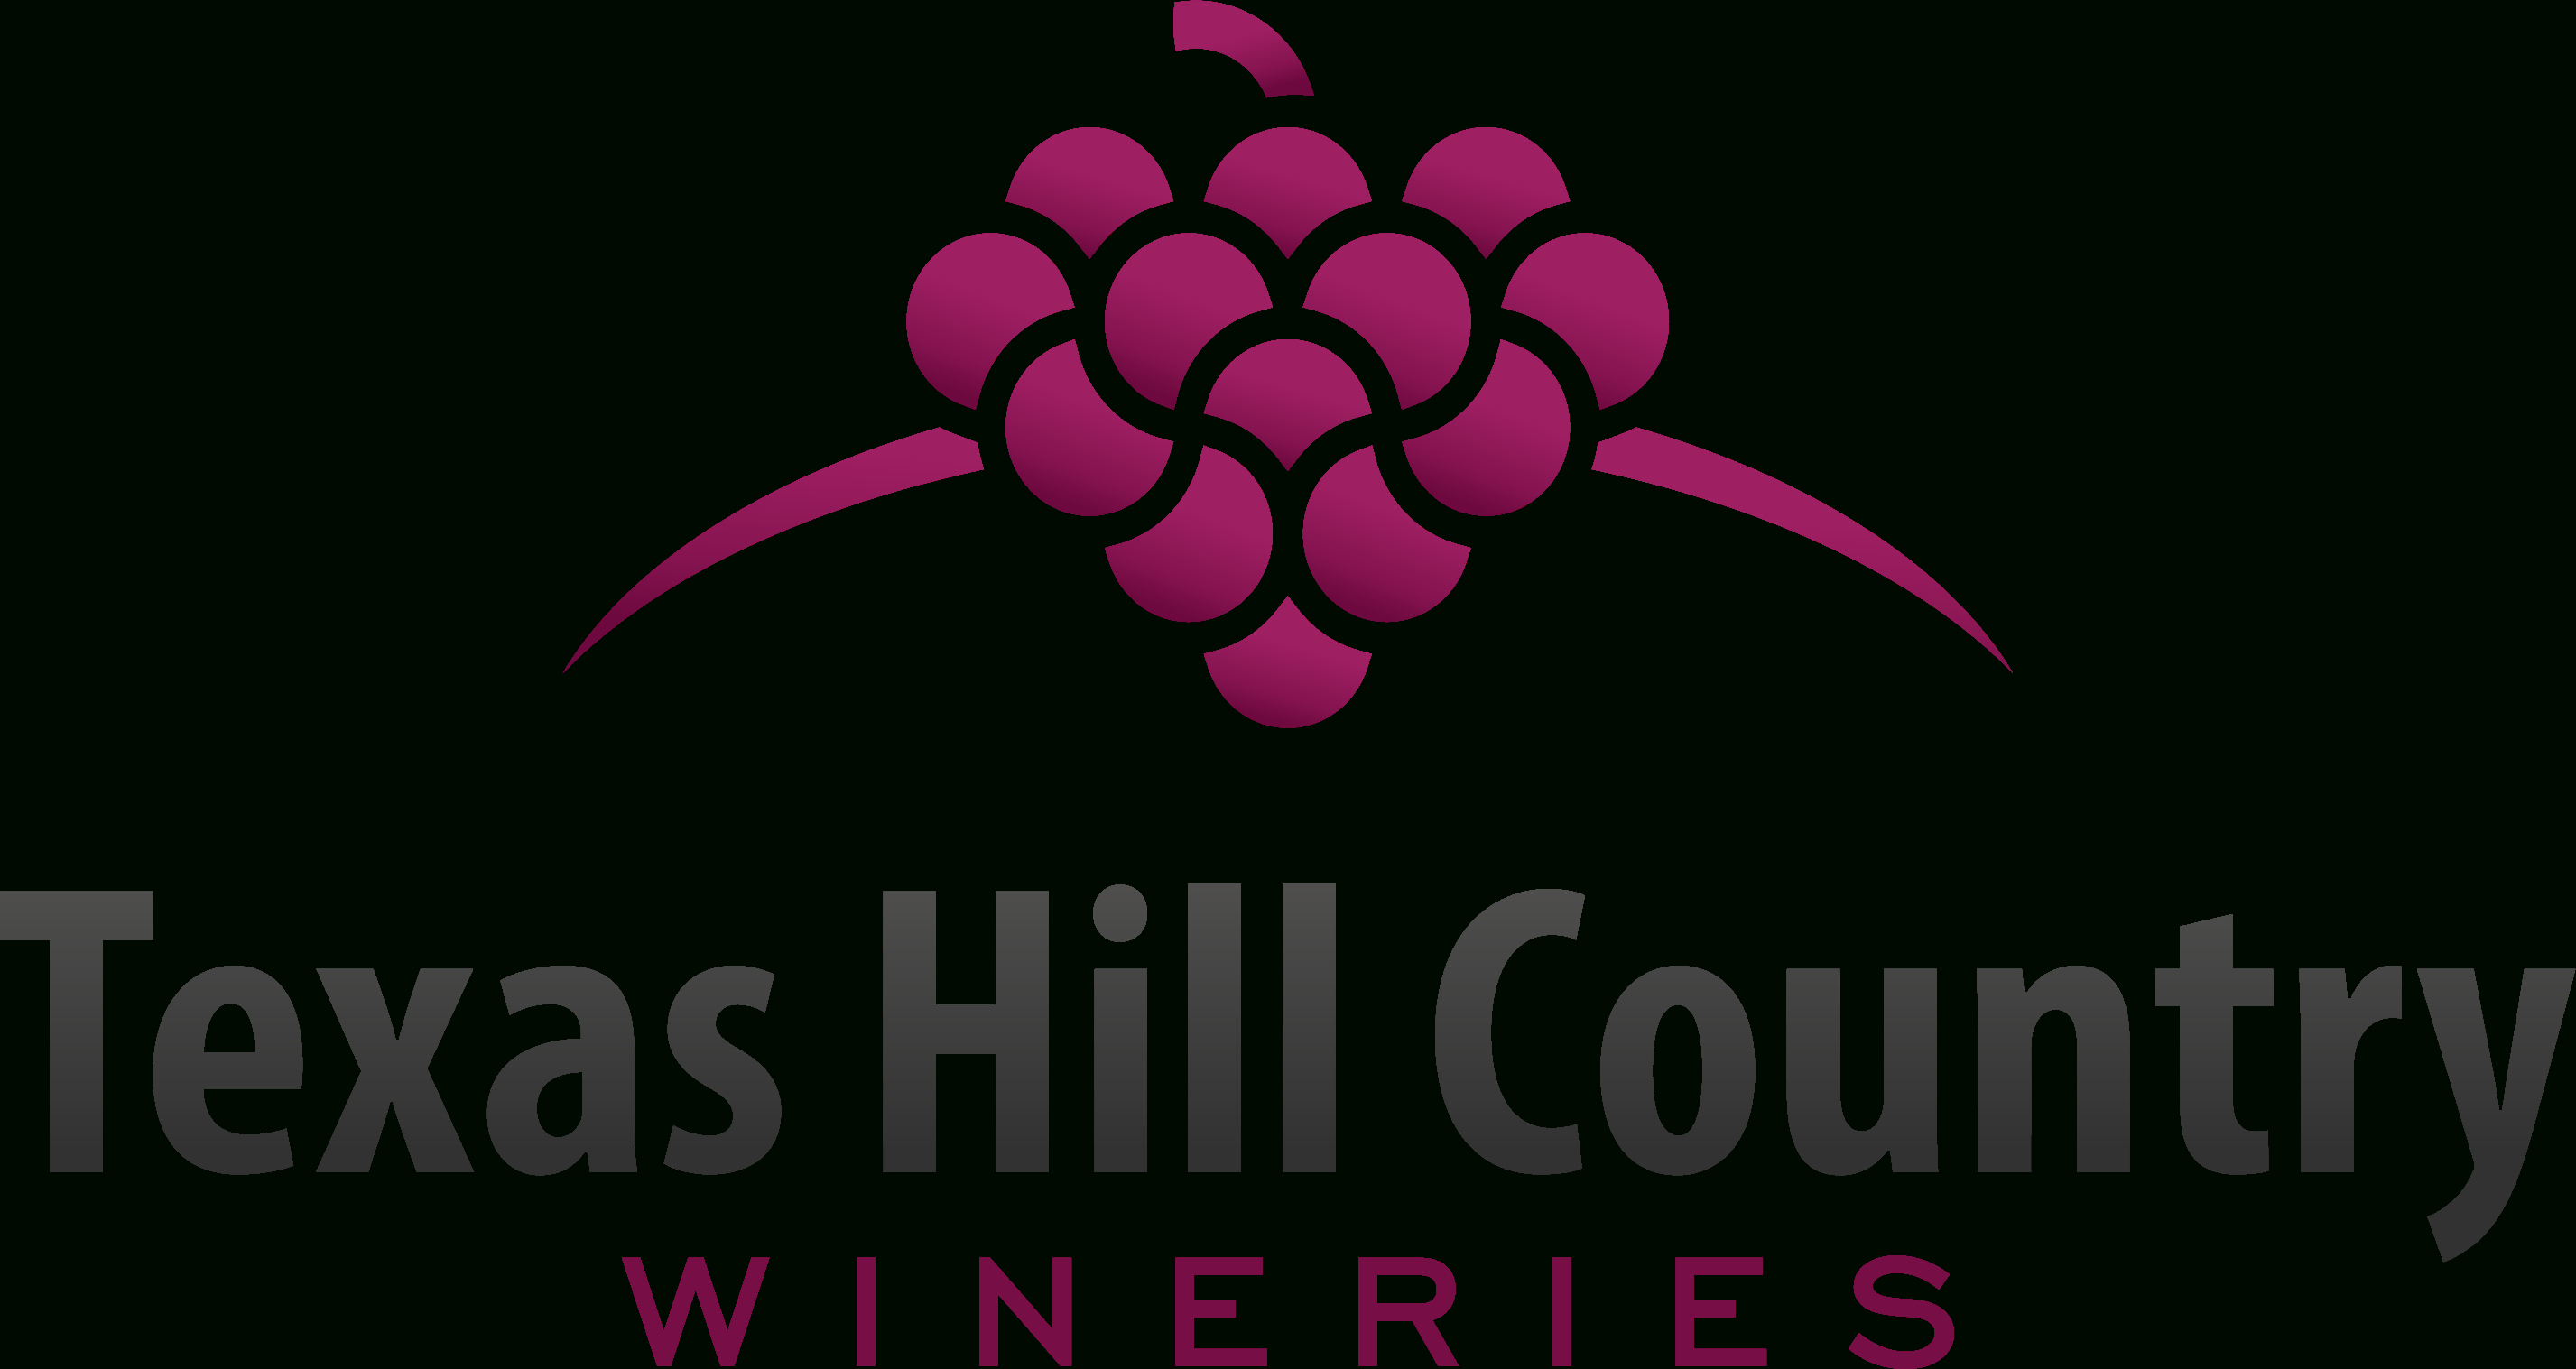 Wine Lovers Celebration 2019/02/08 - 2019/02/24 - Texas Hill Country - Hill Country Texas Wineries Map